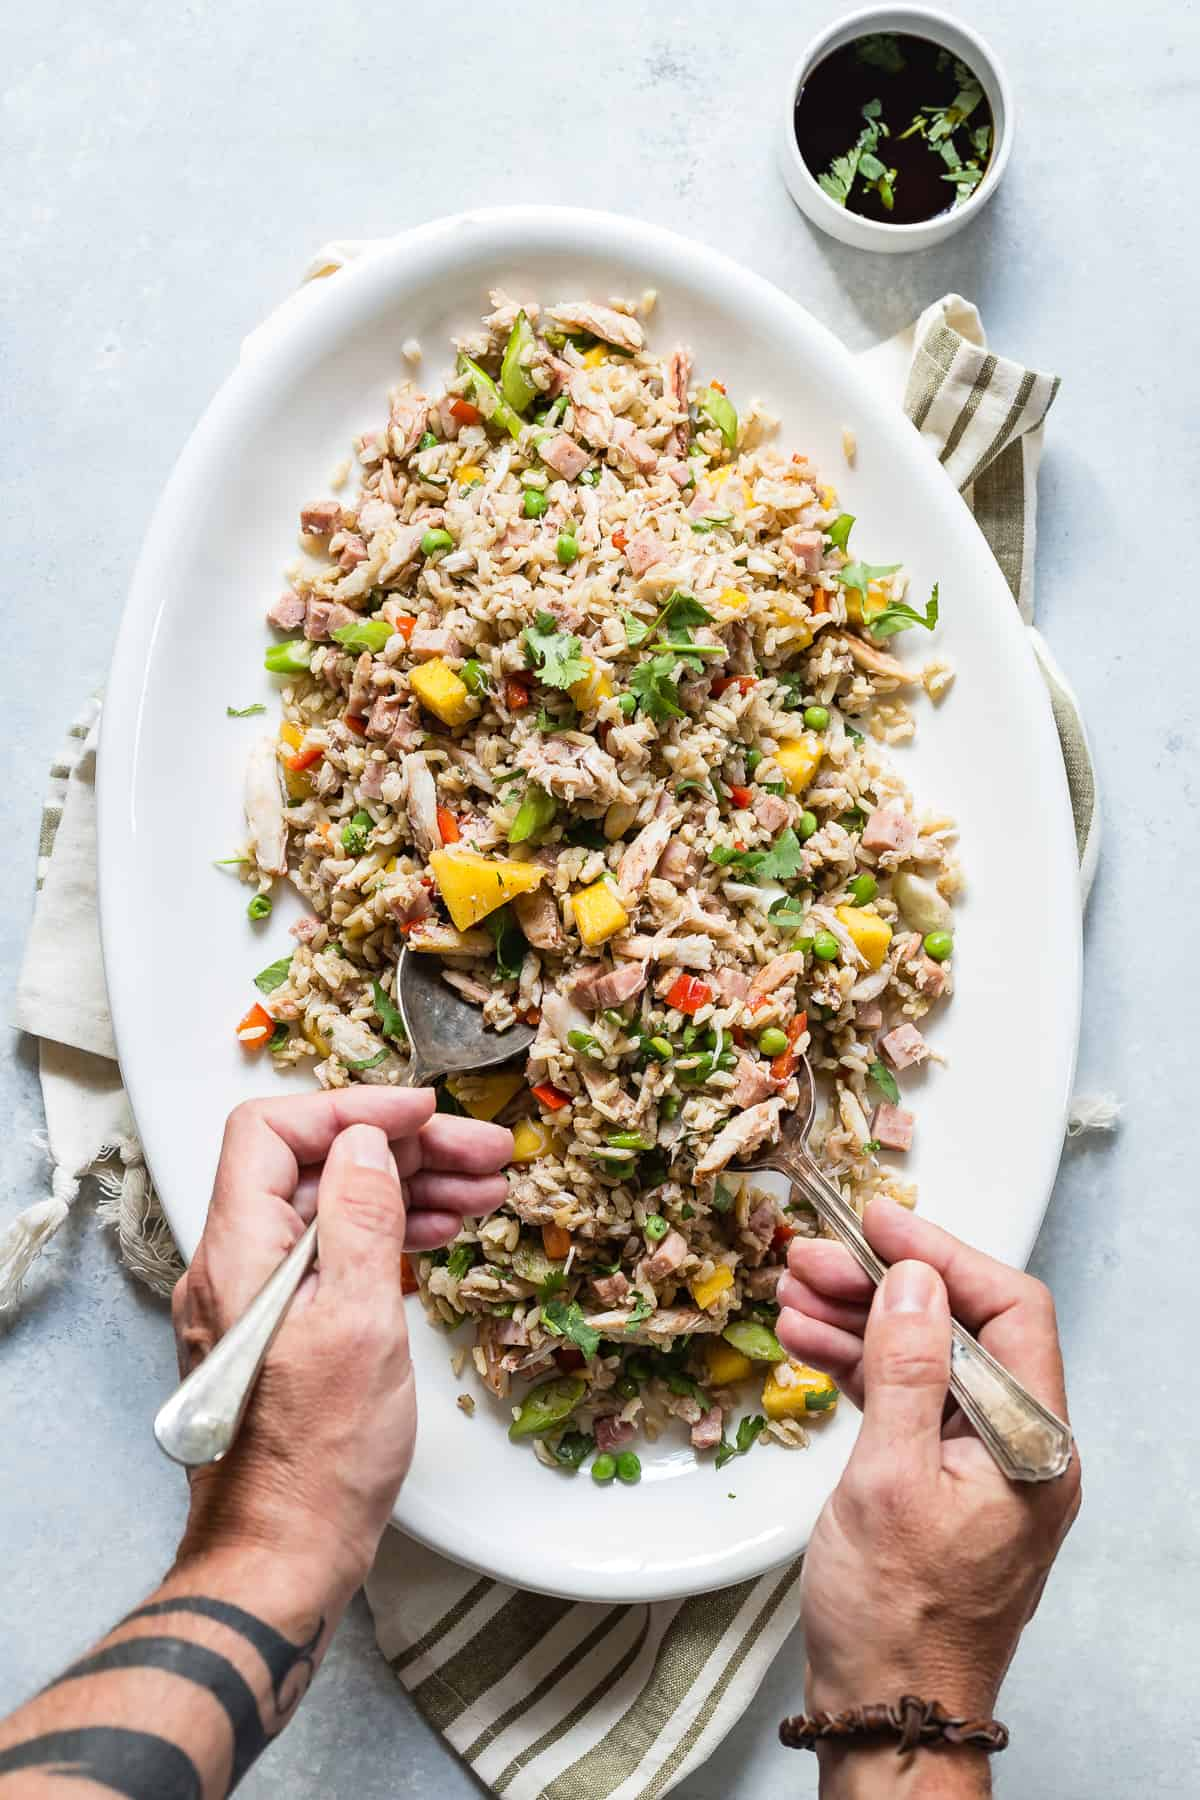 Tasty Fried Rice loaded with chunks of crab meat, diced ham and mango for a touch of sweetness. This is a great way to use up any leftover rice!